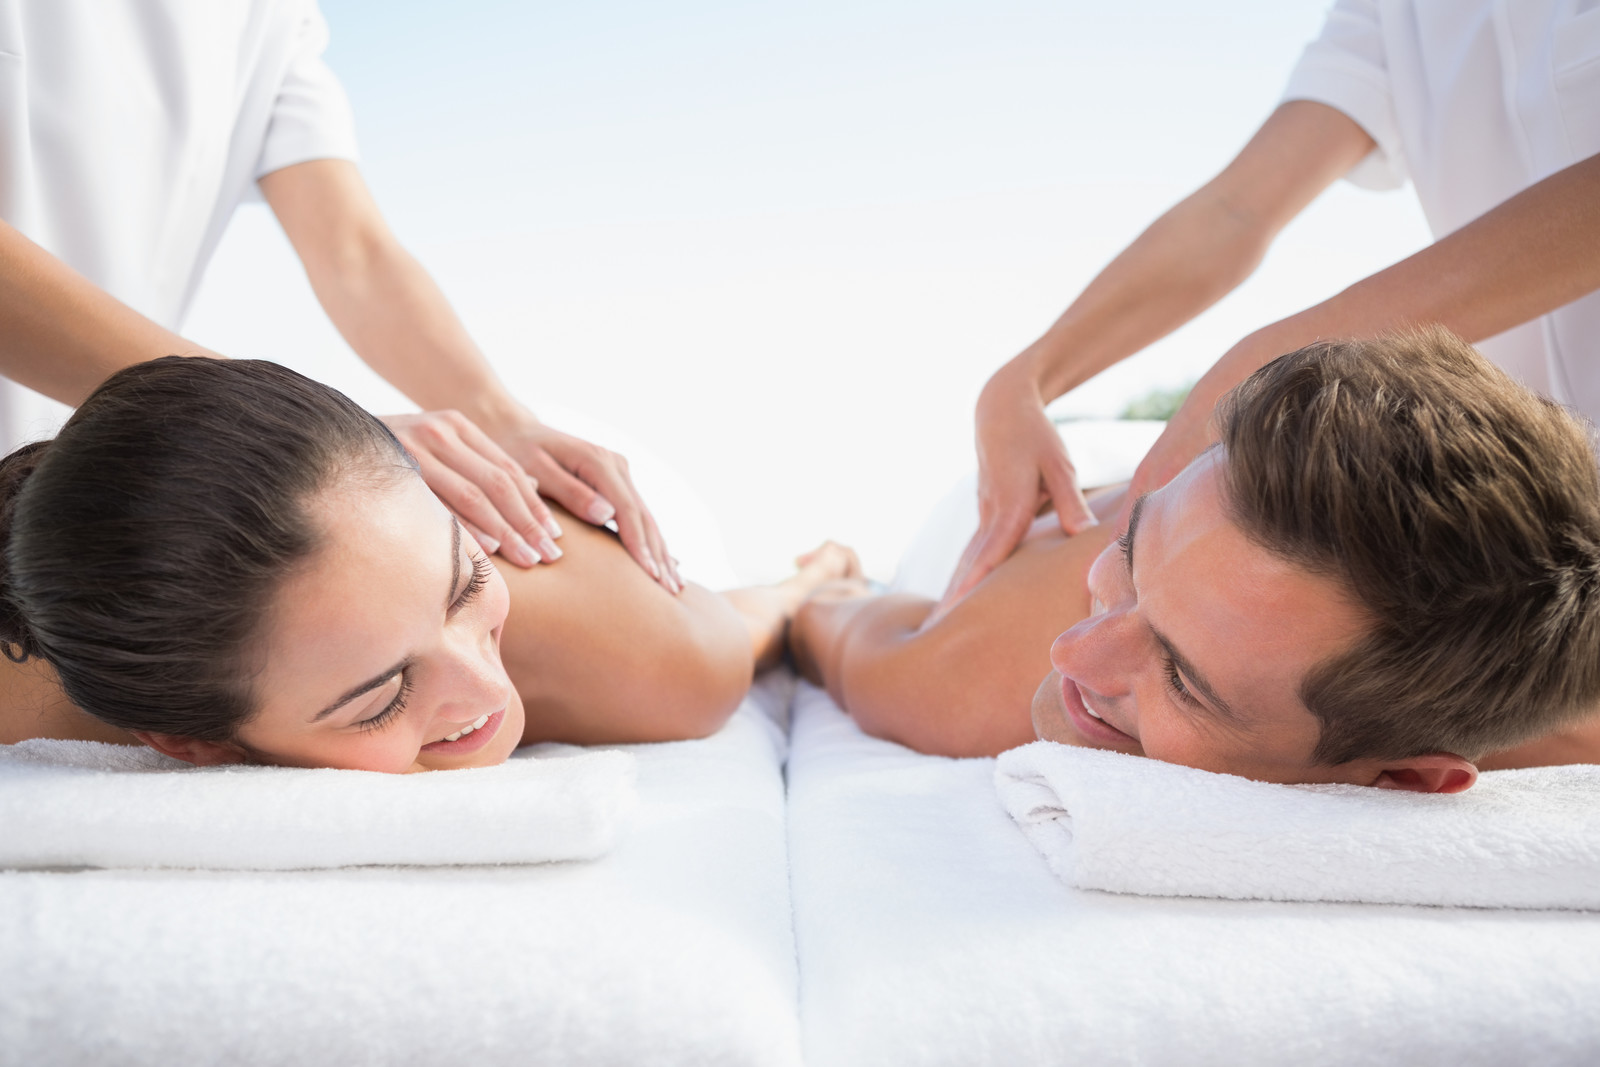 Inn on Lake Wissota has partnered with Nurturing Nature Massage Plus to offer a Couple's Massage Package